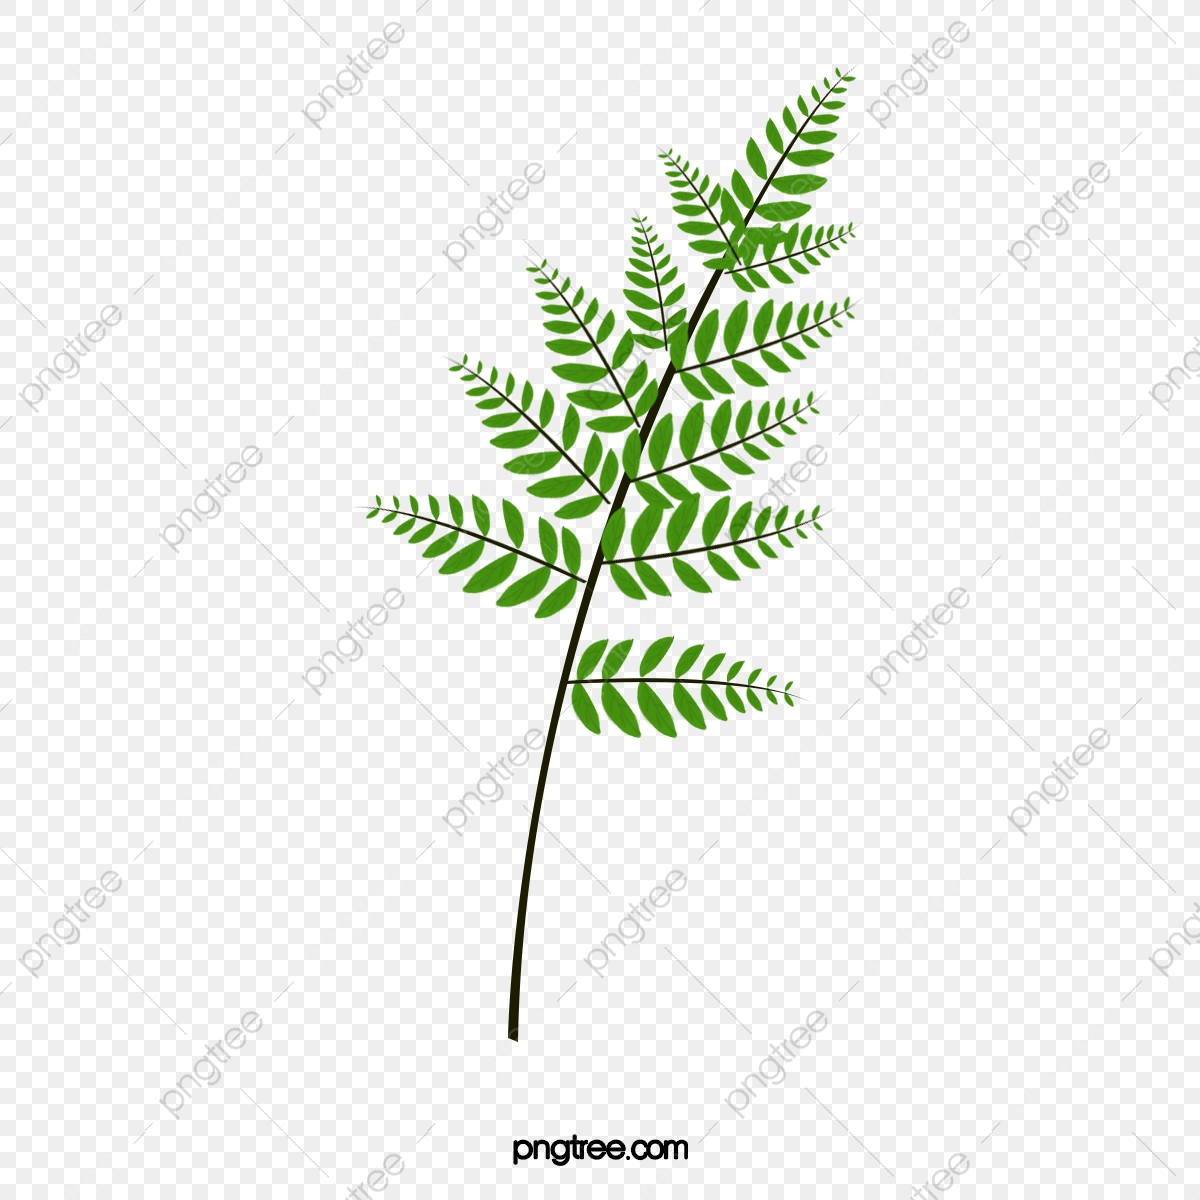 Fern clipart graduation. Green leaves plant real